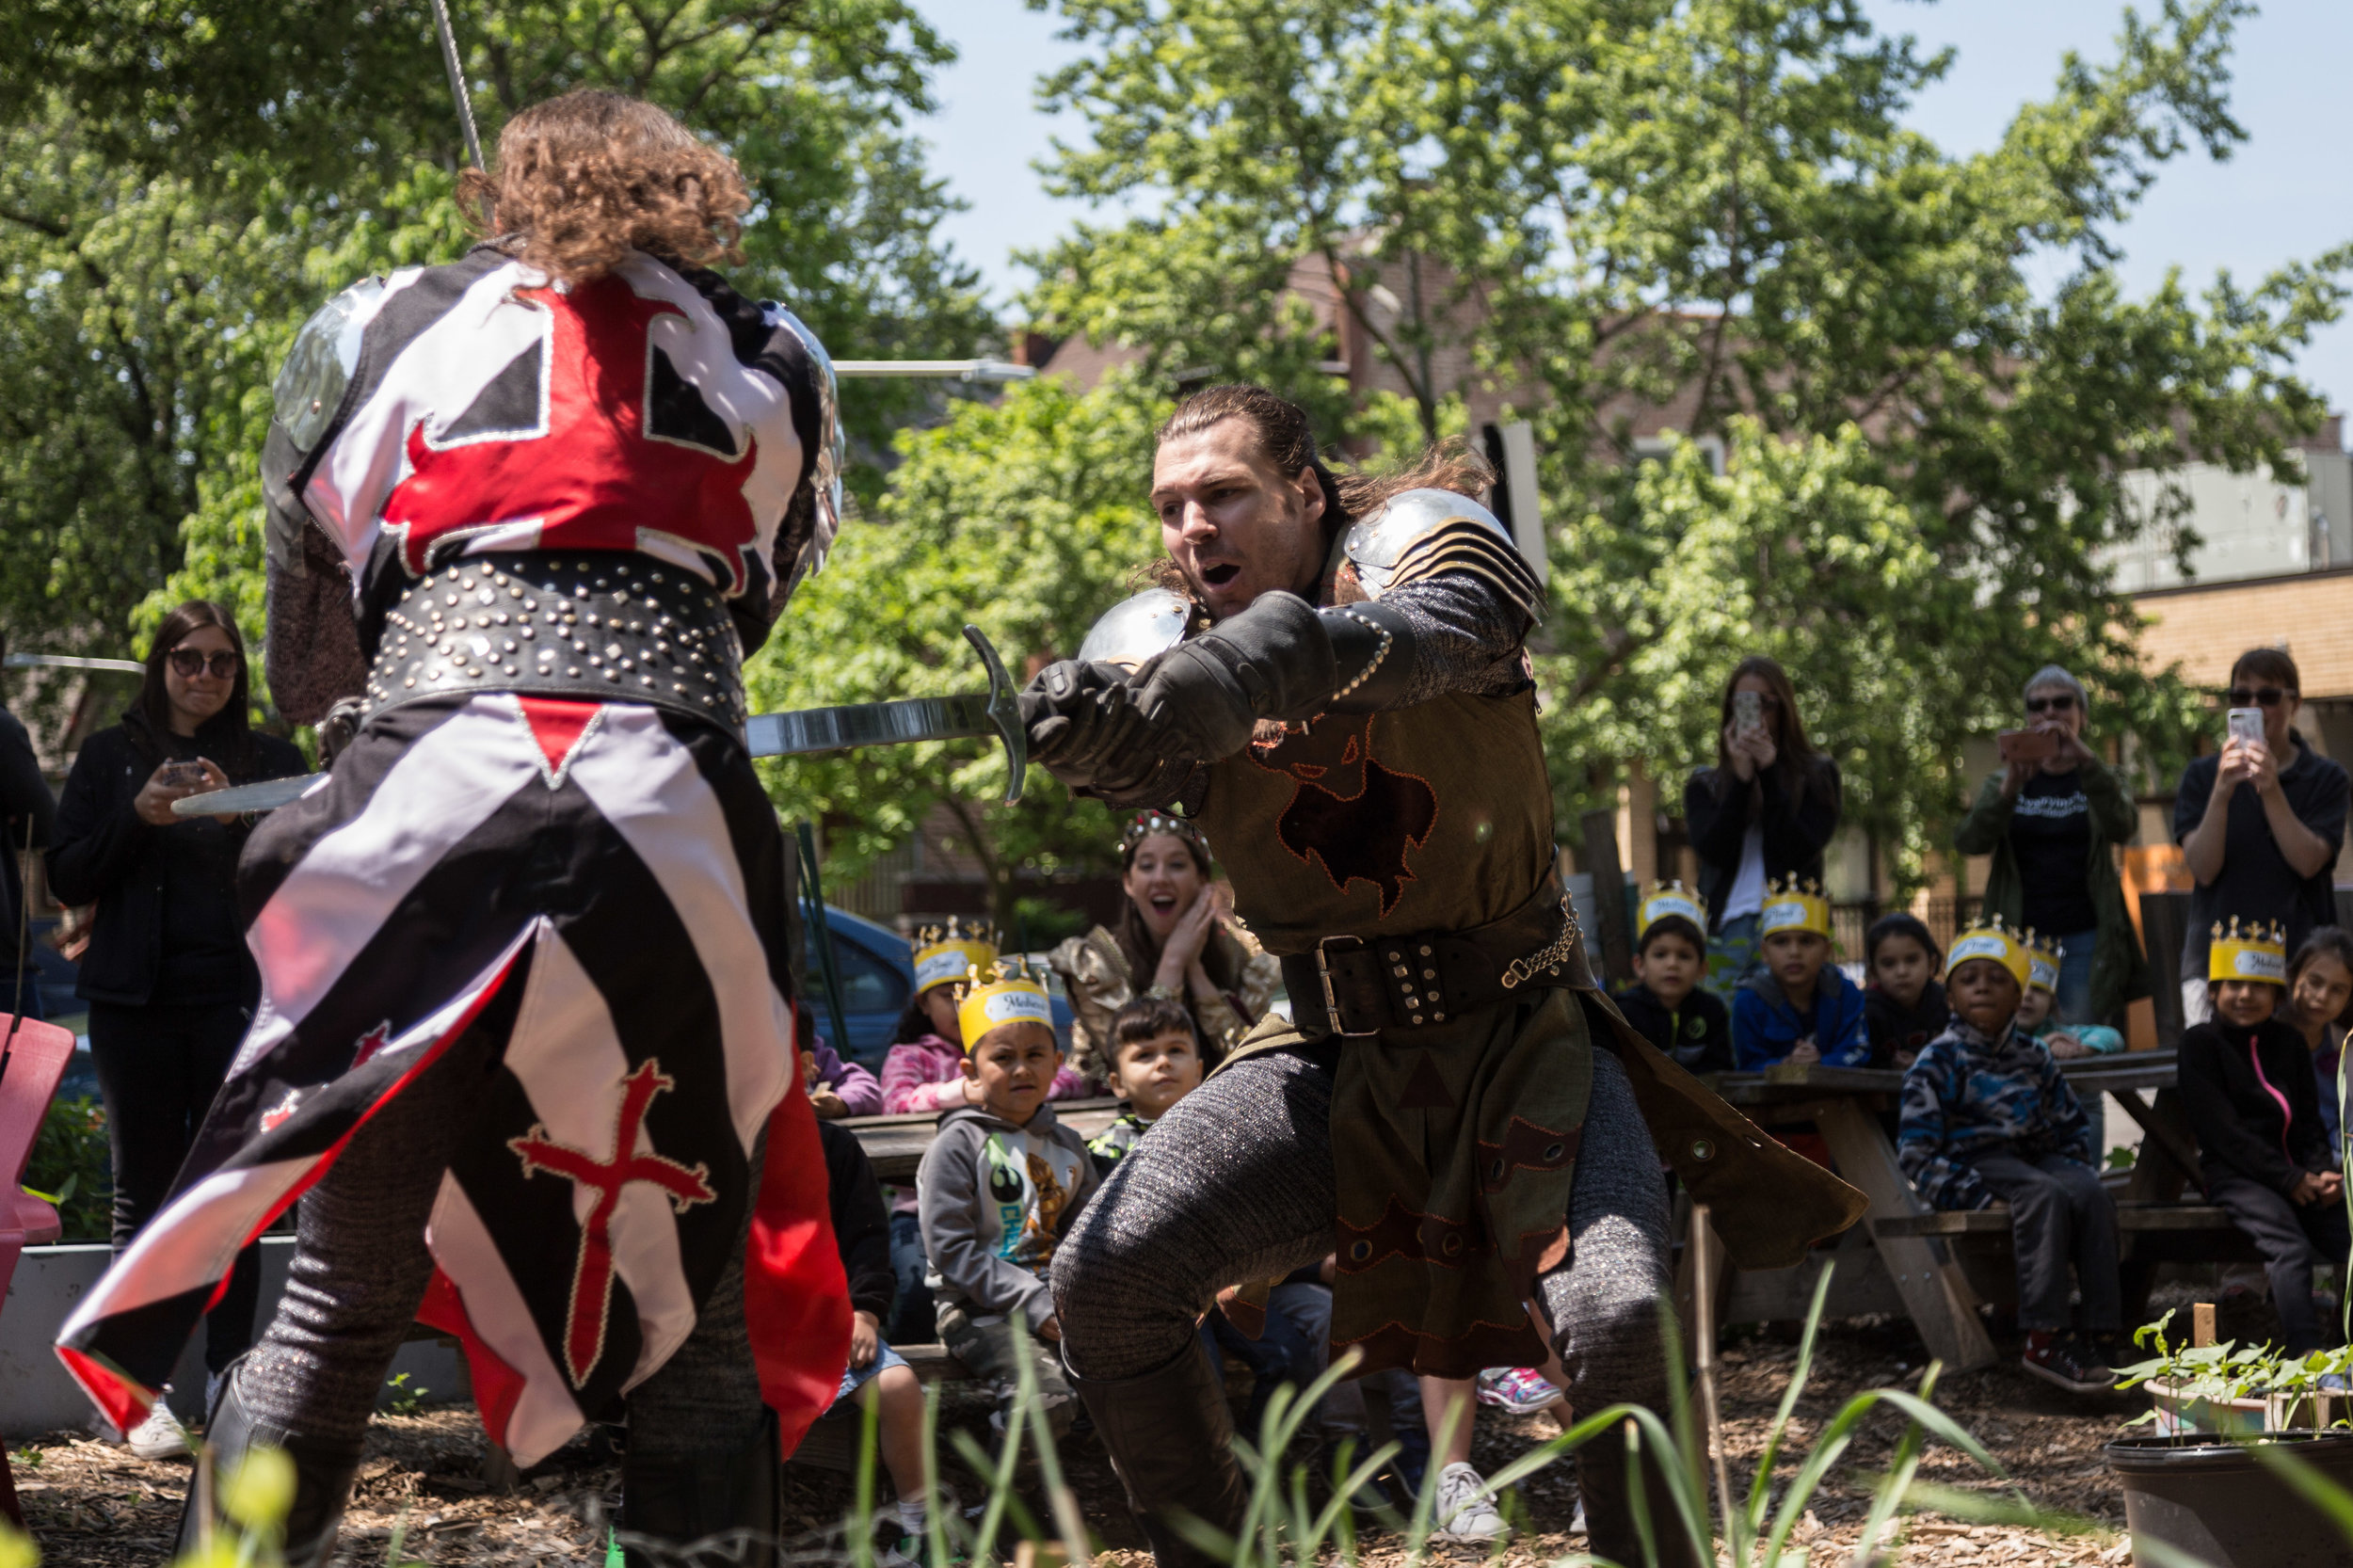 The Black & White Knight (Alec Lukie) and Green Knight (Michael Kiburz) battle at the Altgeld Sawyer Corner Farm.